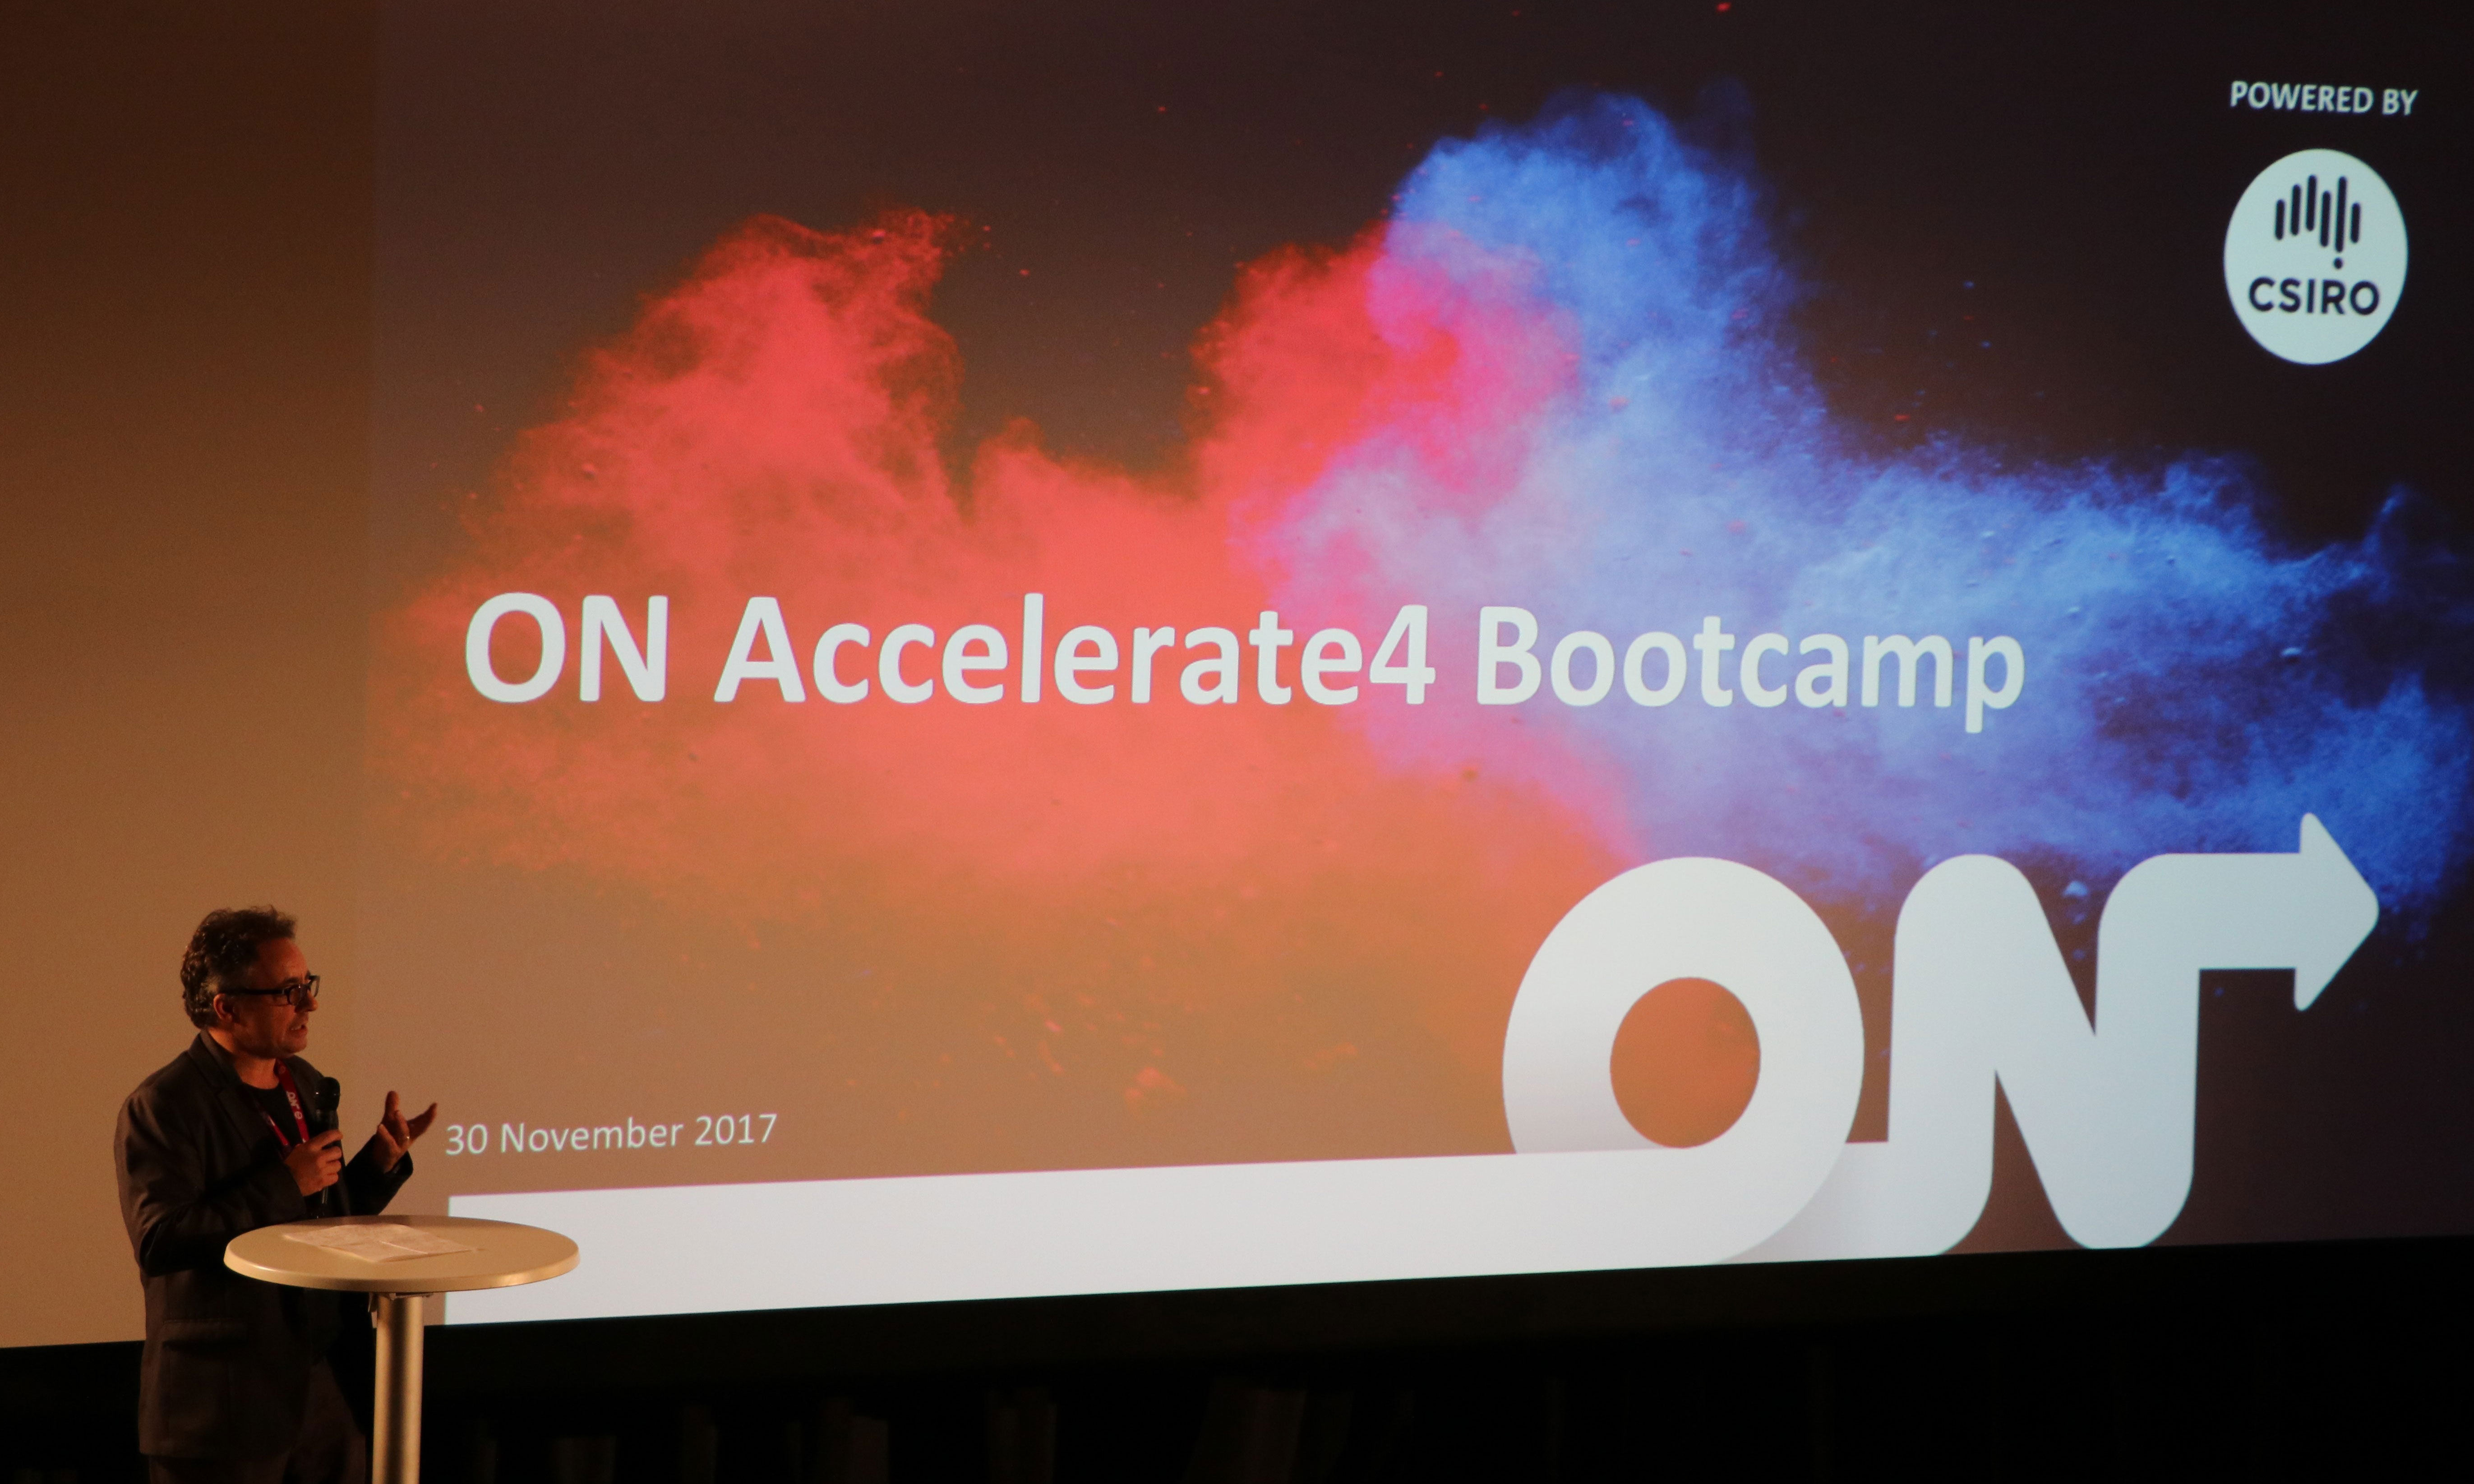 Person on stage giving a presentation with a backdrop image containing the words ON Accelerate4 Bootcamp, with the ON logo at the bottom and the Powered by CSIRO logo at the top.